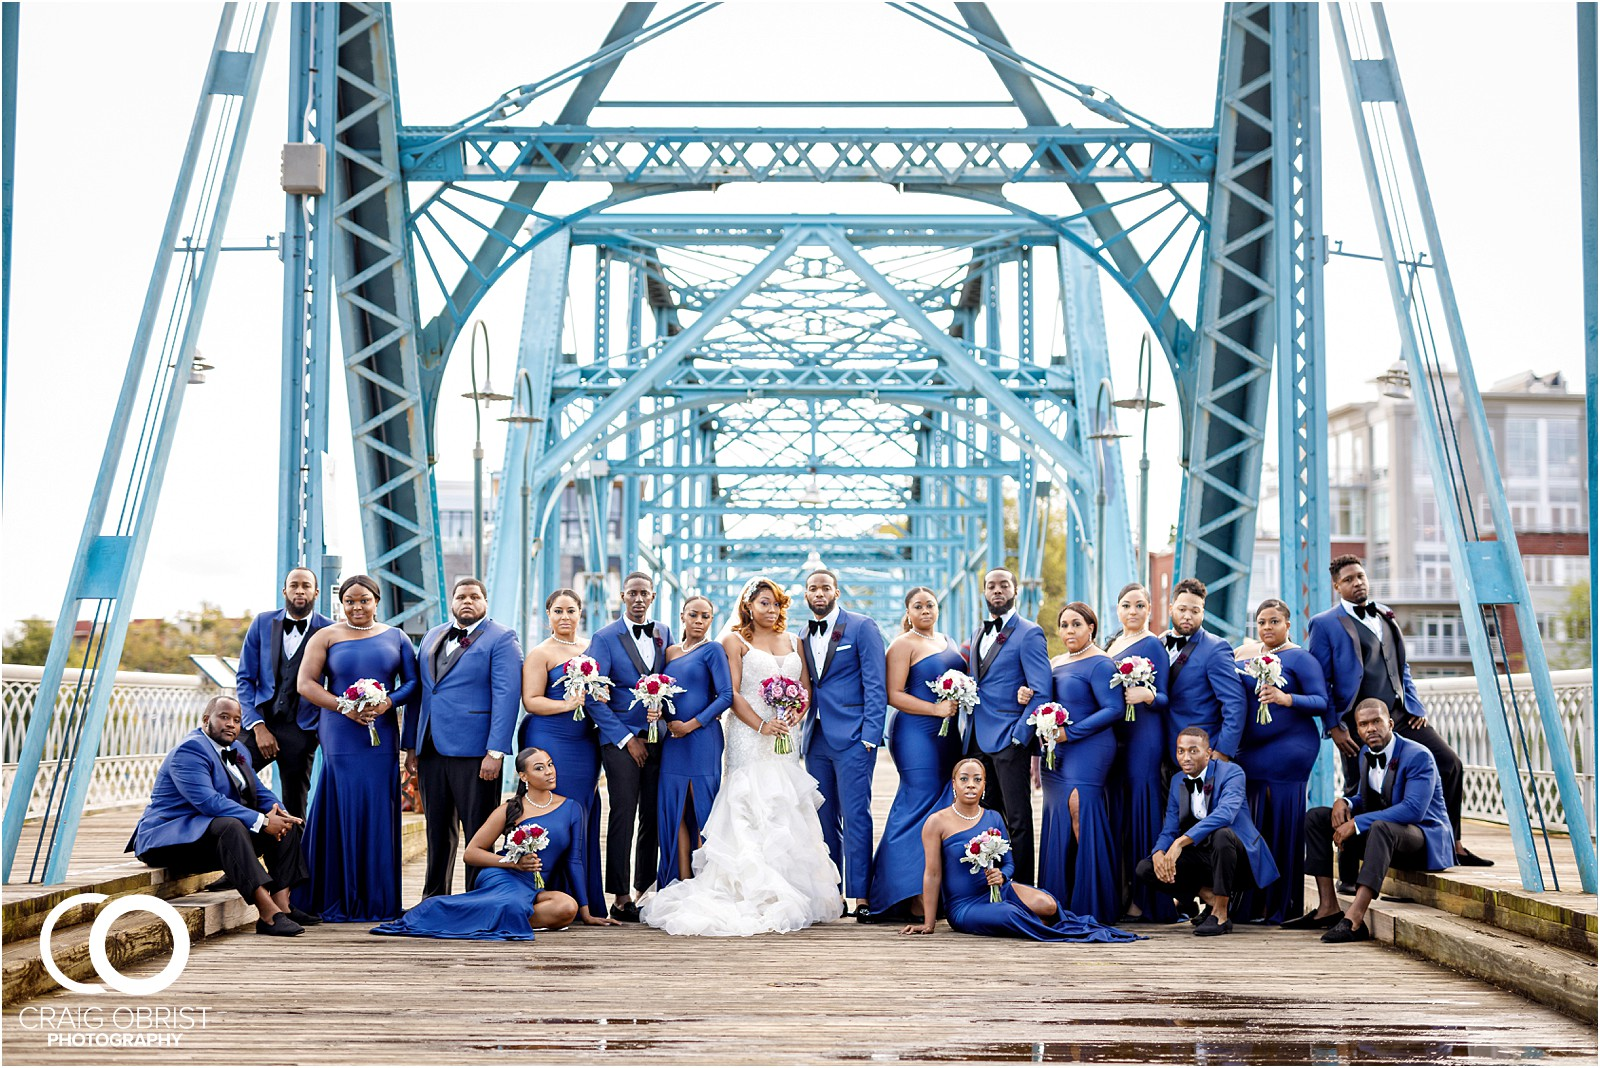 Stratton Hall Chattanooga Walnut Street Bridge Wedding Portraits_0030.jpg